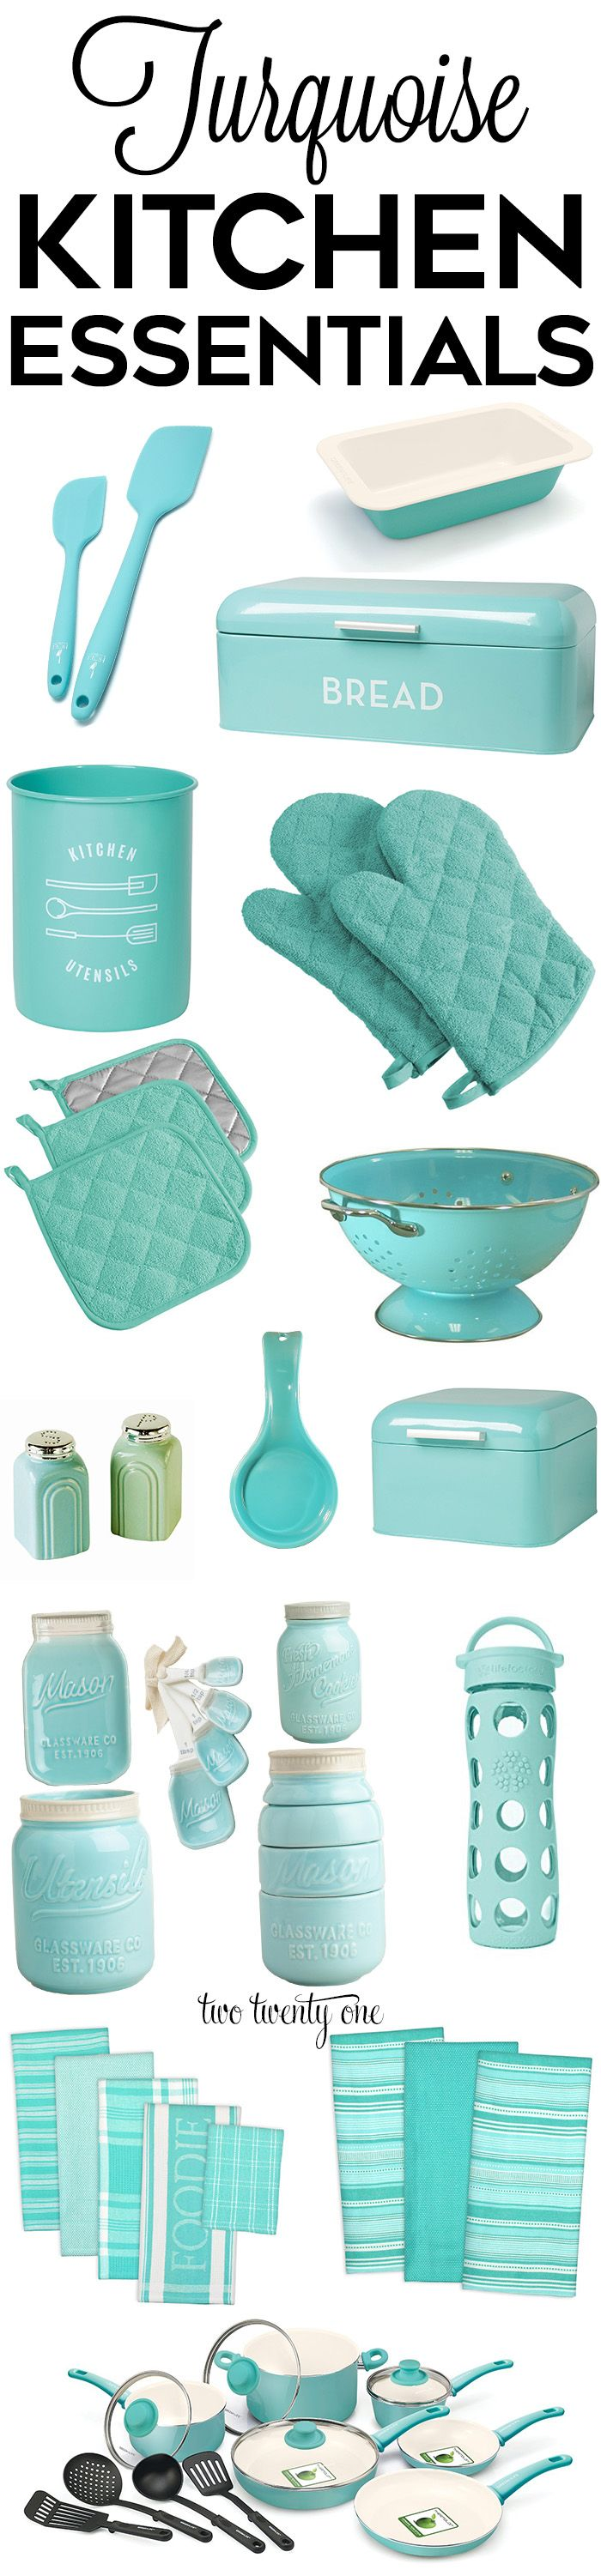 Turquoise kitchen decor, appliances, and gadgets! Popular Pins!